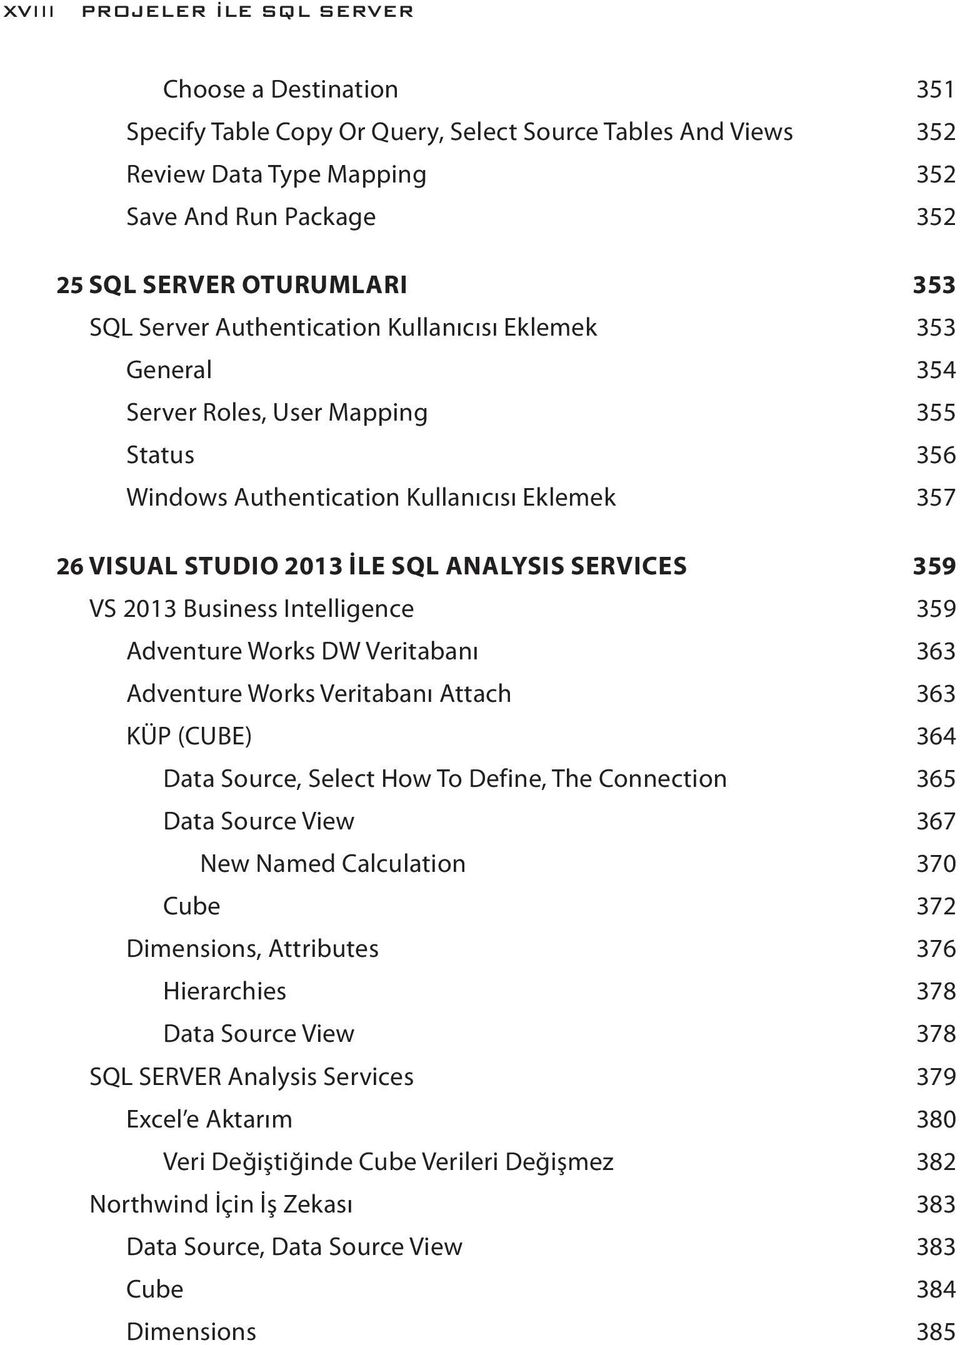 SERVICES 359 VS 2013 Business Intelligence 359 Adventure Works DW Veritabanı 363 Adventure Works Veritabanı Attach 363 KÜP (CUBE) 364 Data Source, Select How To Define, The Connection 365 Data Source